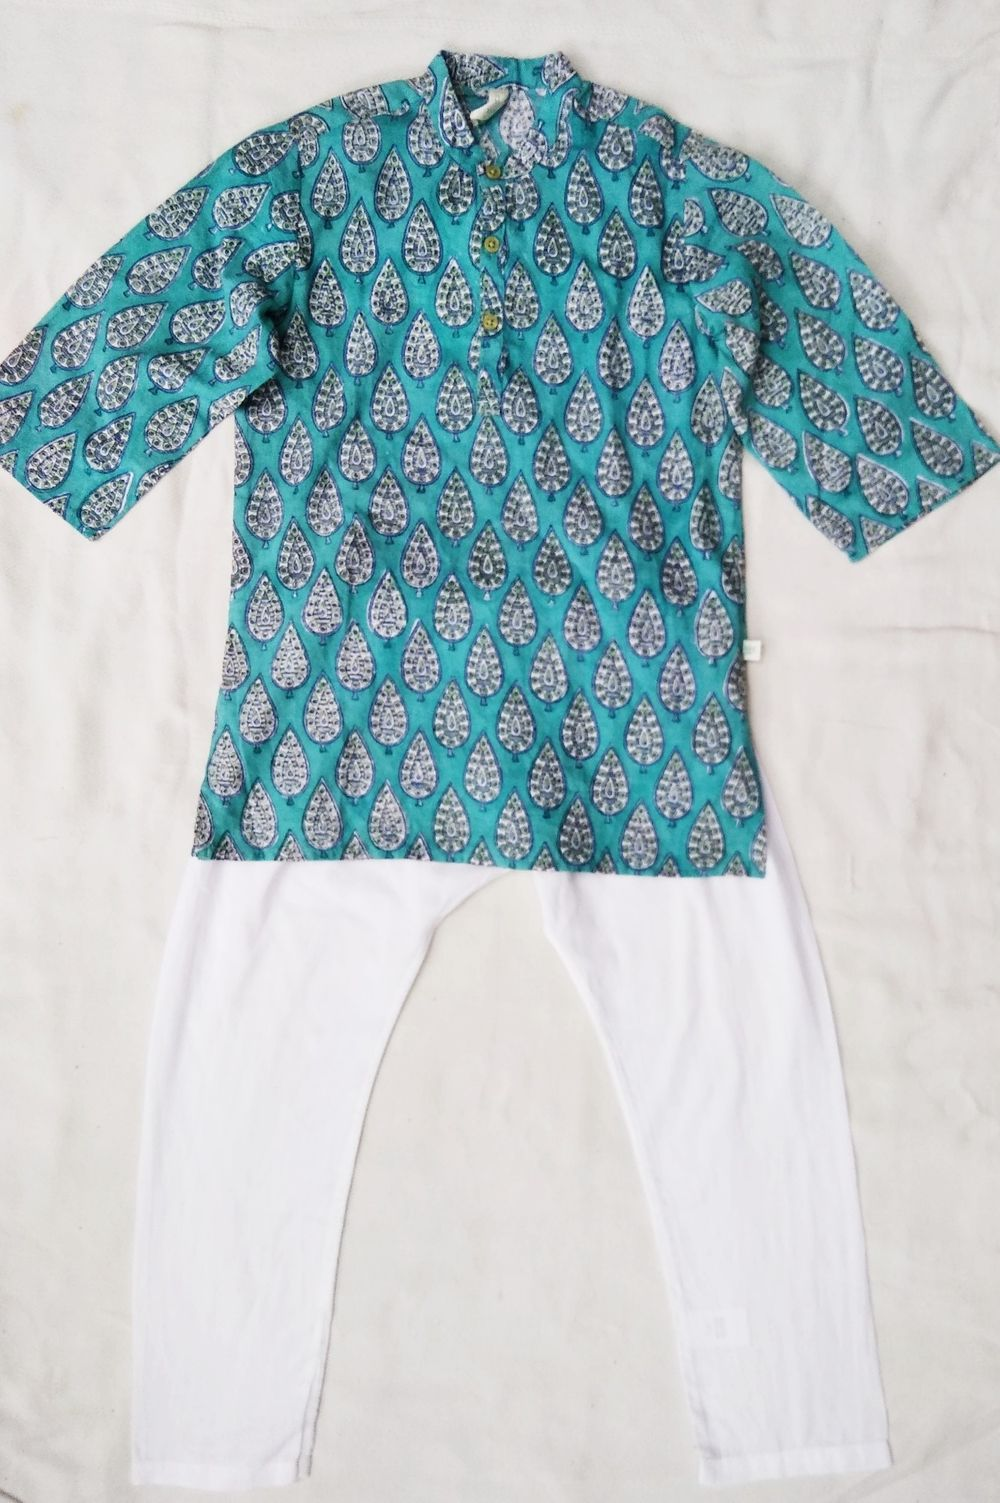 4e2730ee441 Khadiwallah - Anokhi Koki Teal Green Leaf Hand block print Indian cotton  Boys Tunic style Shirt Top & Pant Set